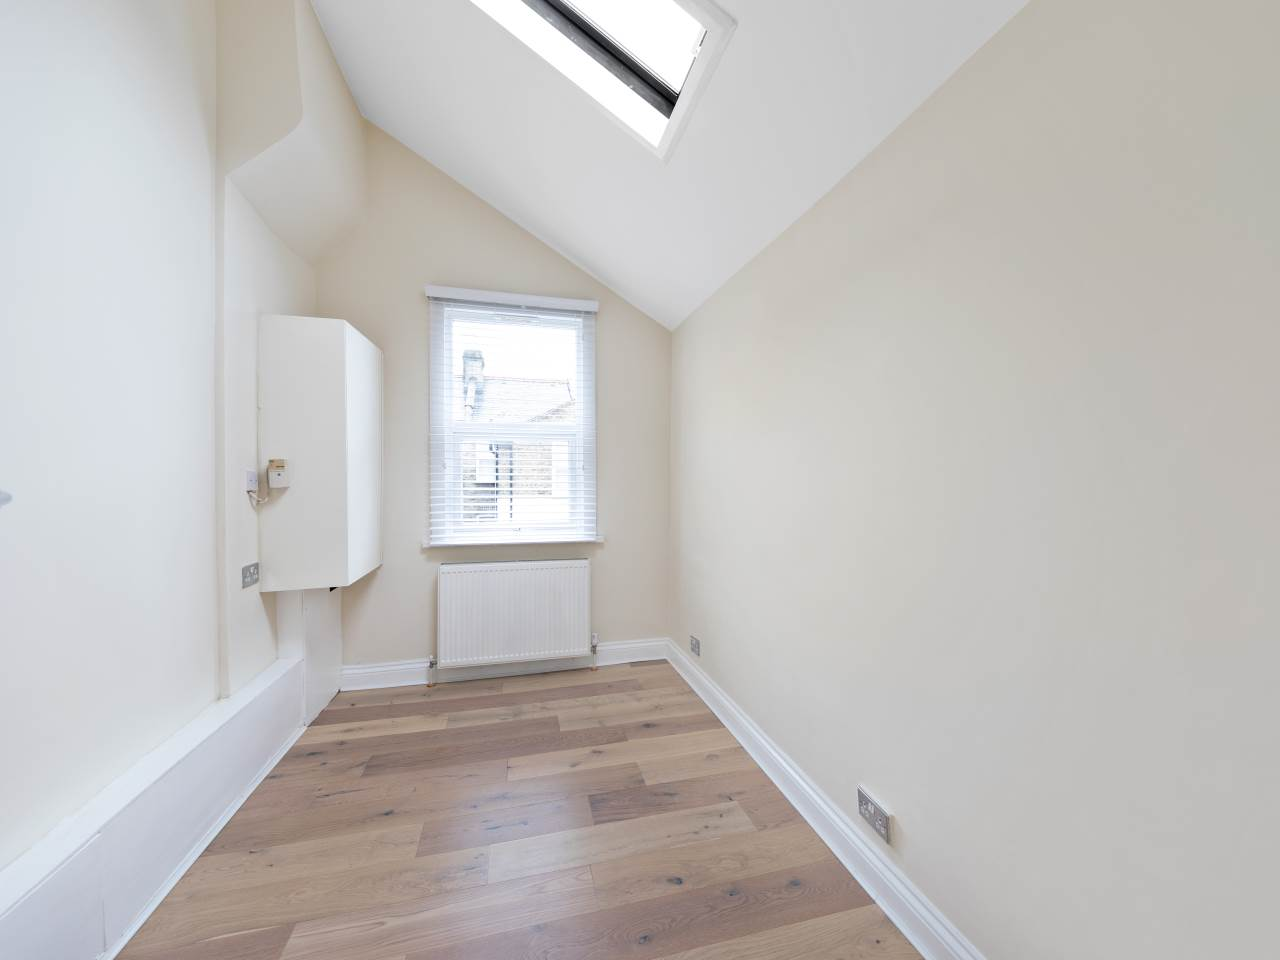 3 bed house for sale in Exning Road , Canning Town   - Property Image 11